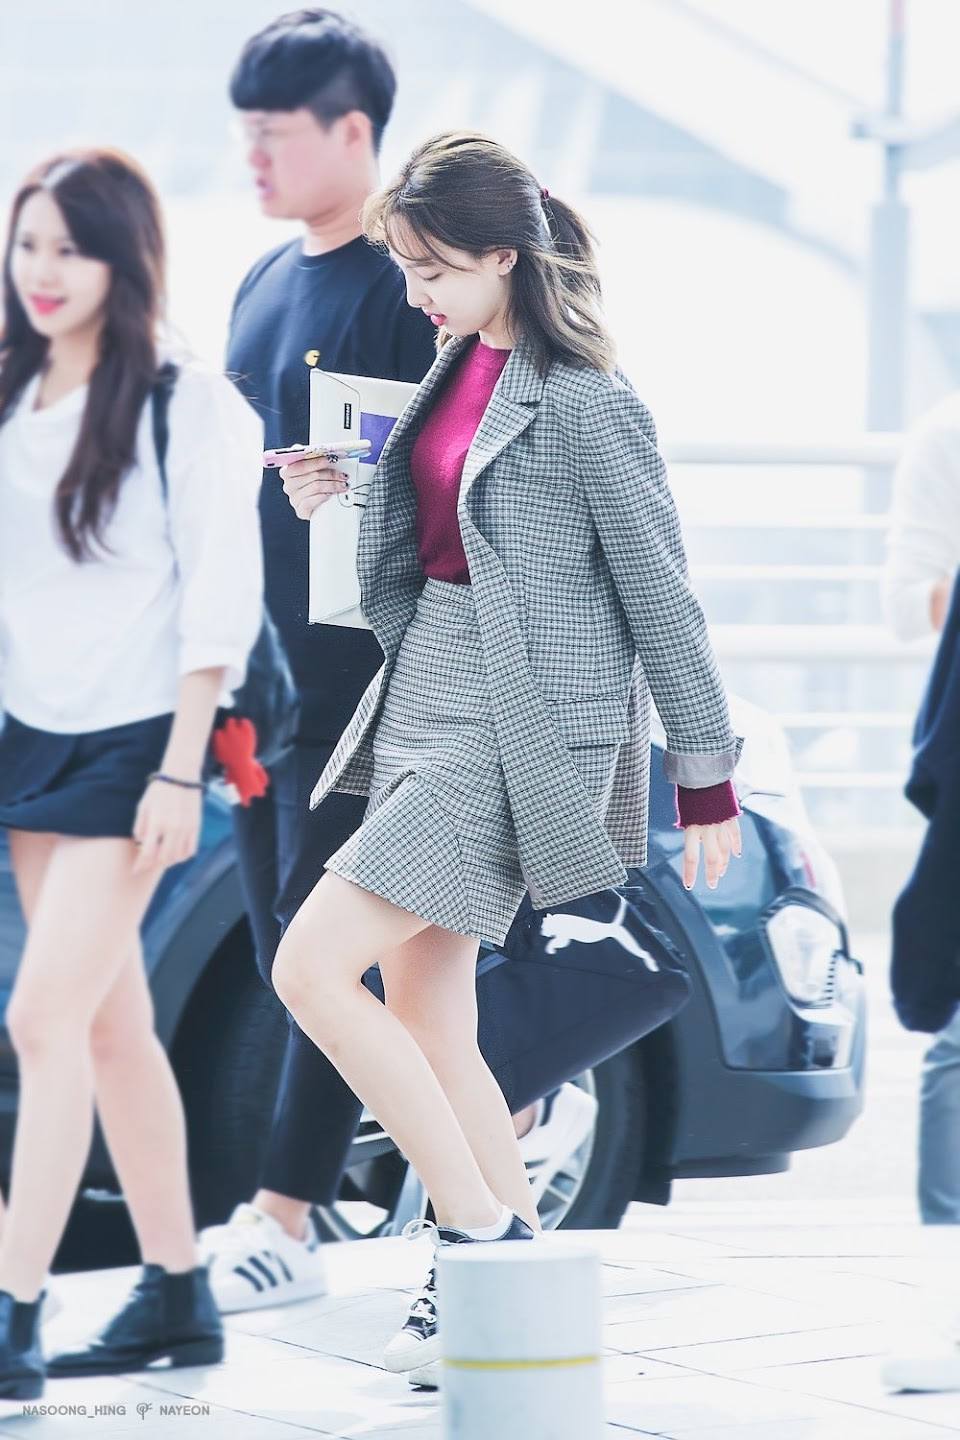 nayeon airport fashion